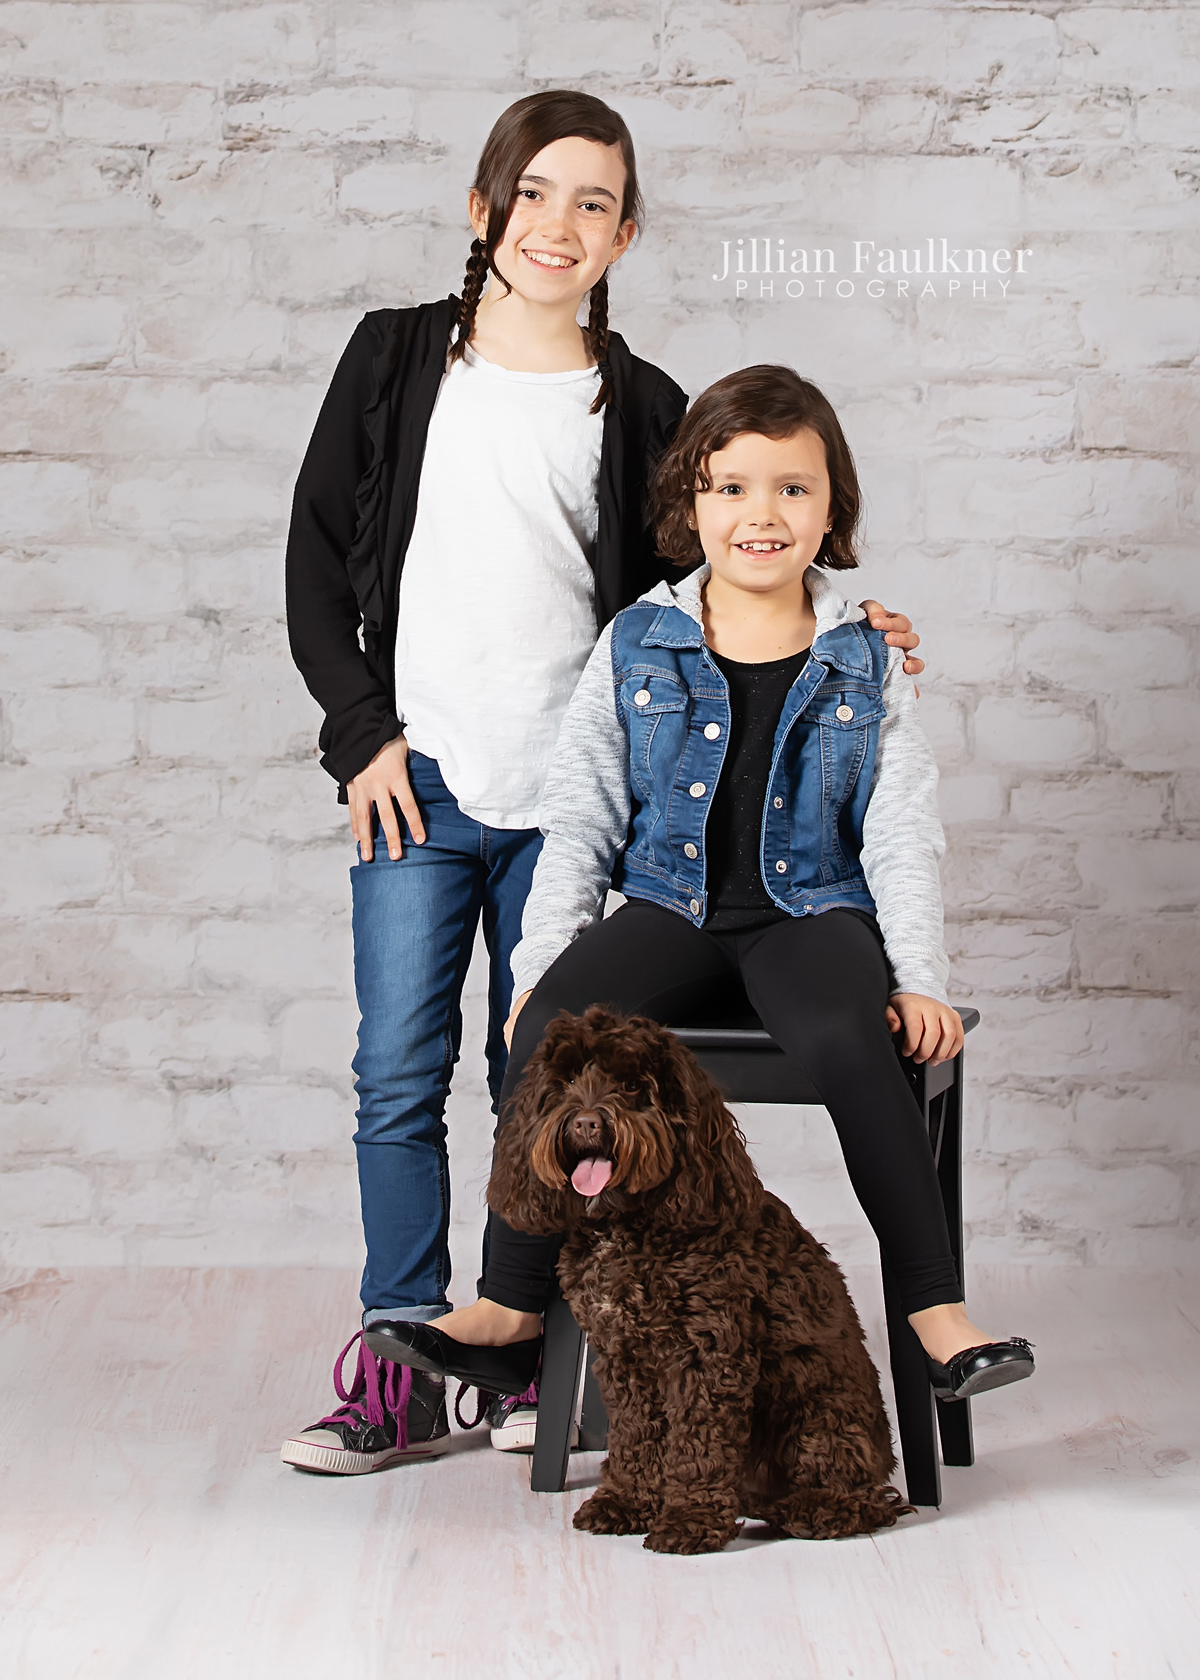 Calgary professional photographer Jillian Faulkner offers studio photography session in her home studio located in southwest Calgary, Alberta. She offers newborn, child and family portrait photography sessions that do include prints and digital files.